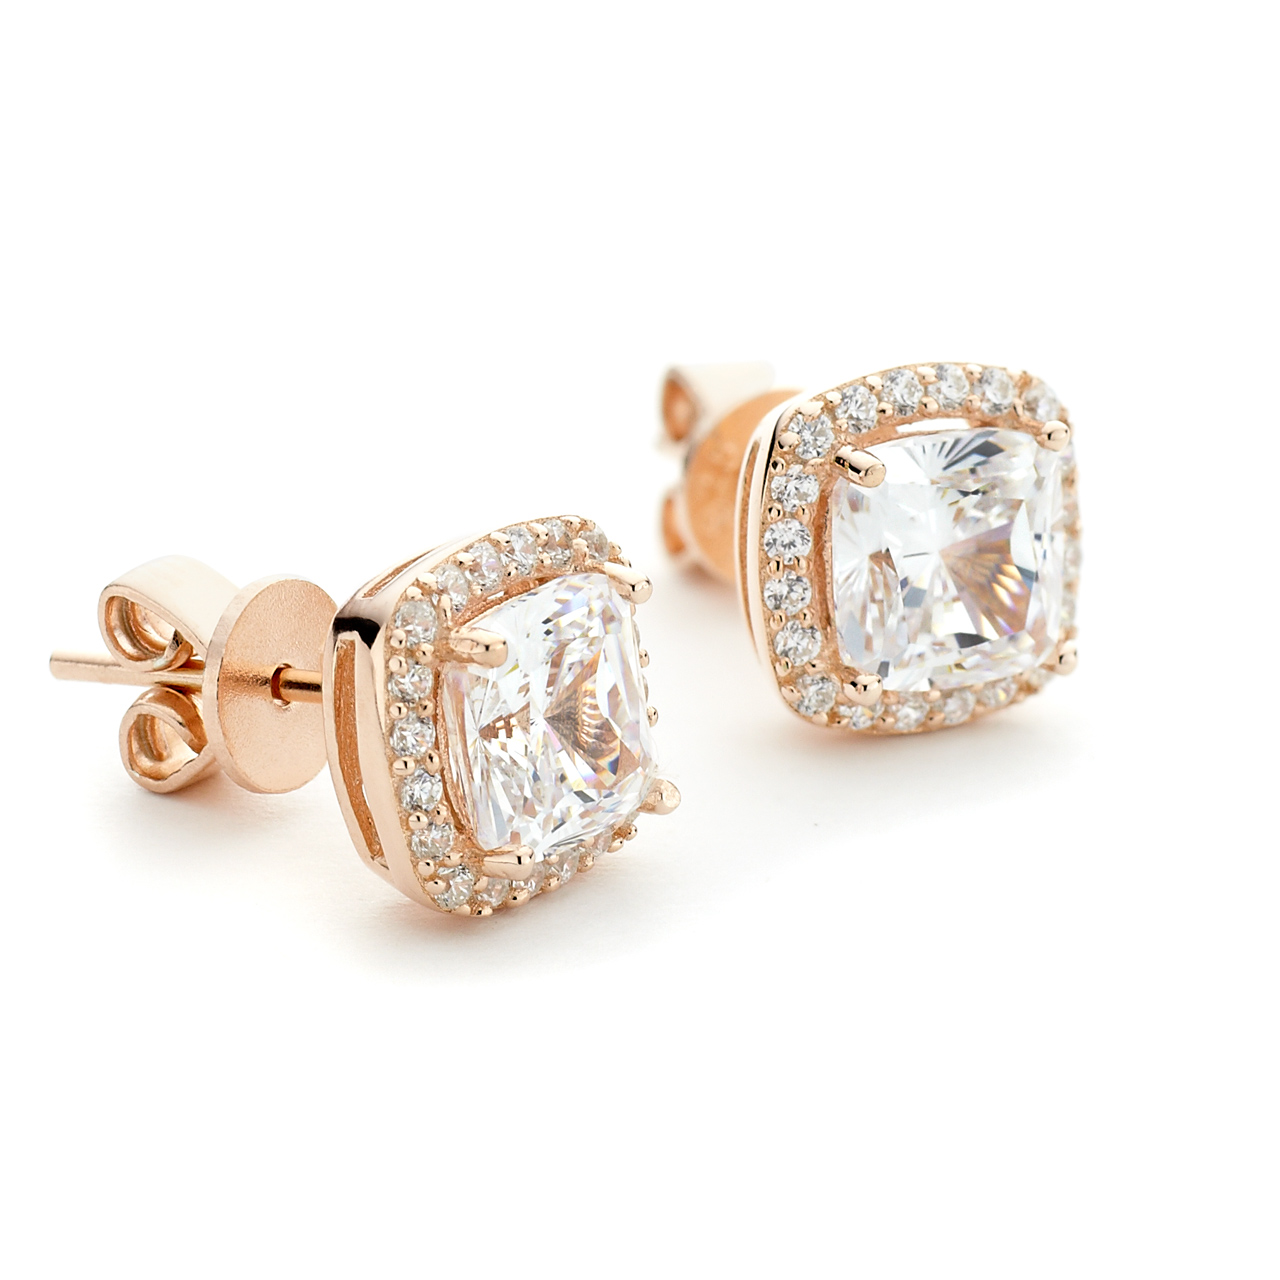 Constellations Square Stone Stud Earrings From One By In Rose Gold Vermeil With Crystal Halo